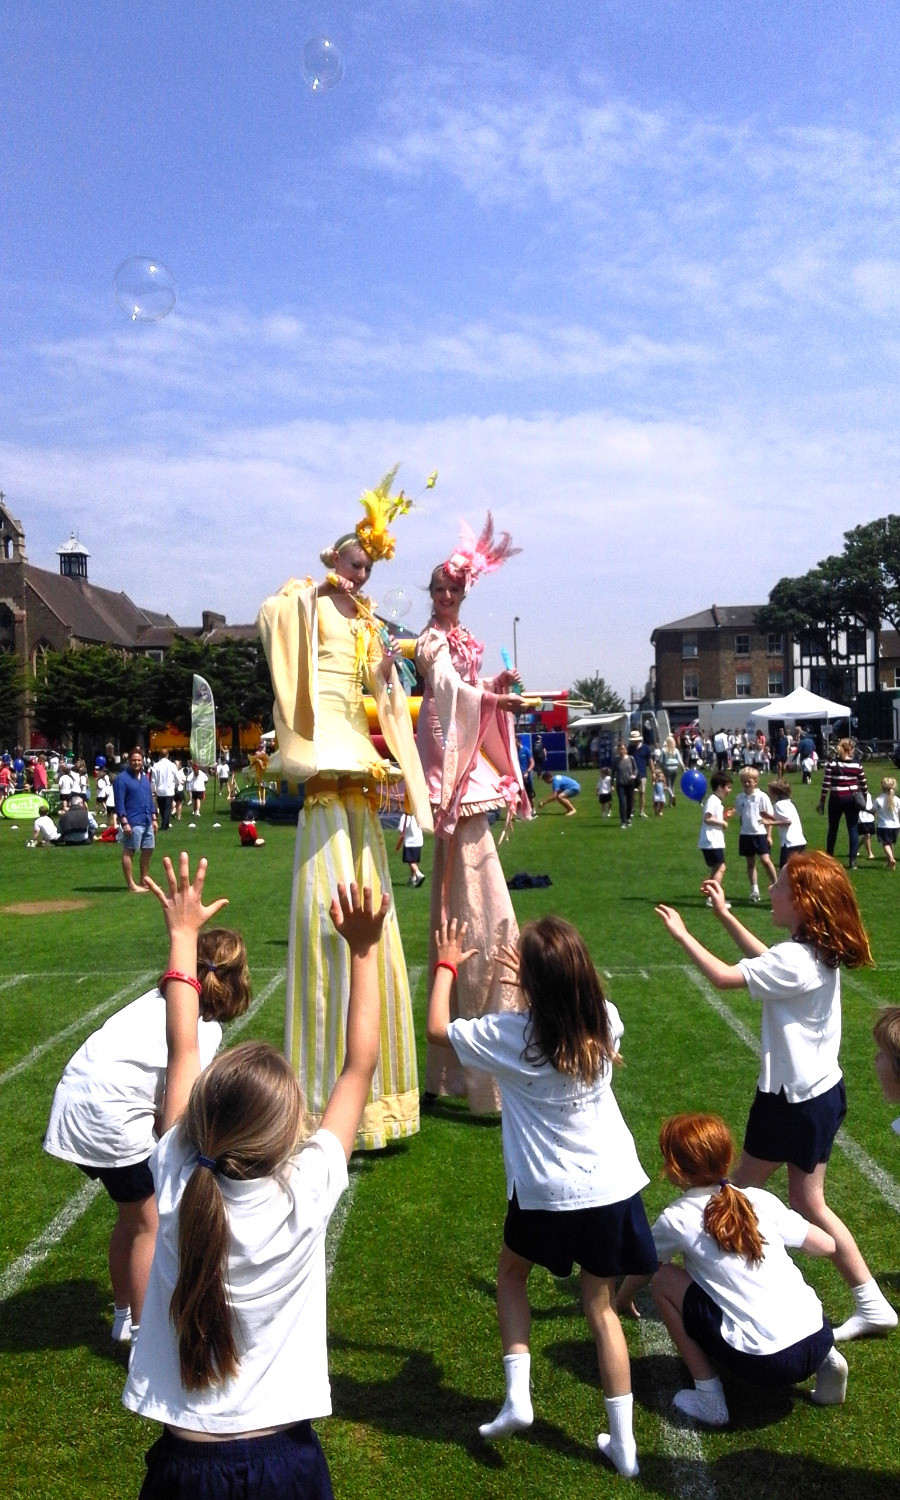 The Ladies Circus Stilt Walkers Blowing Bubbles in South London